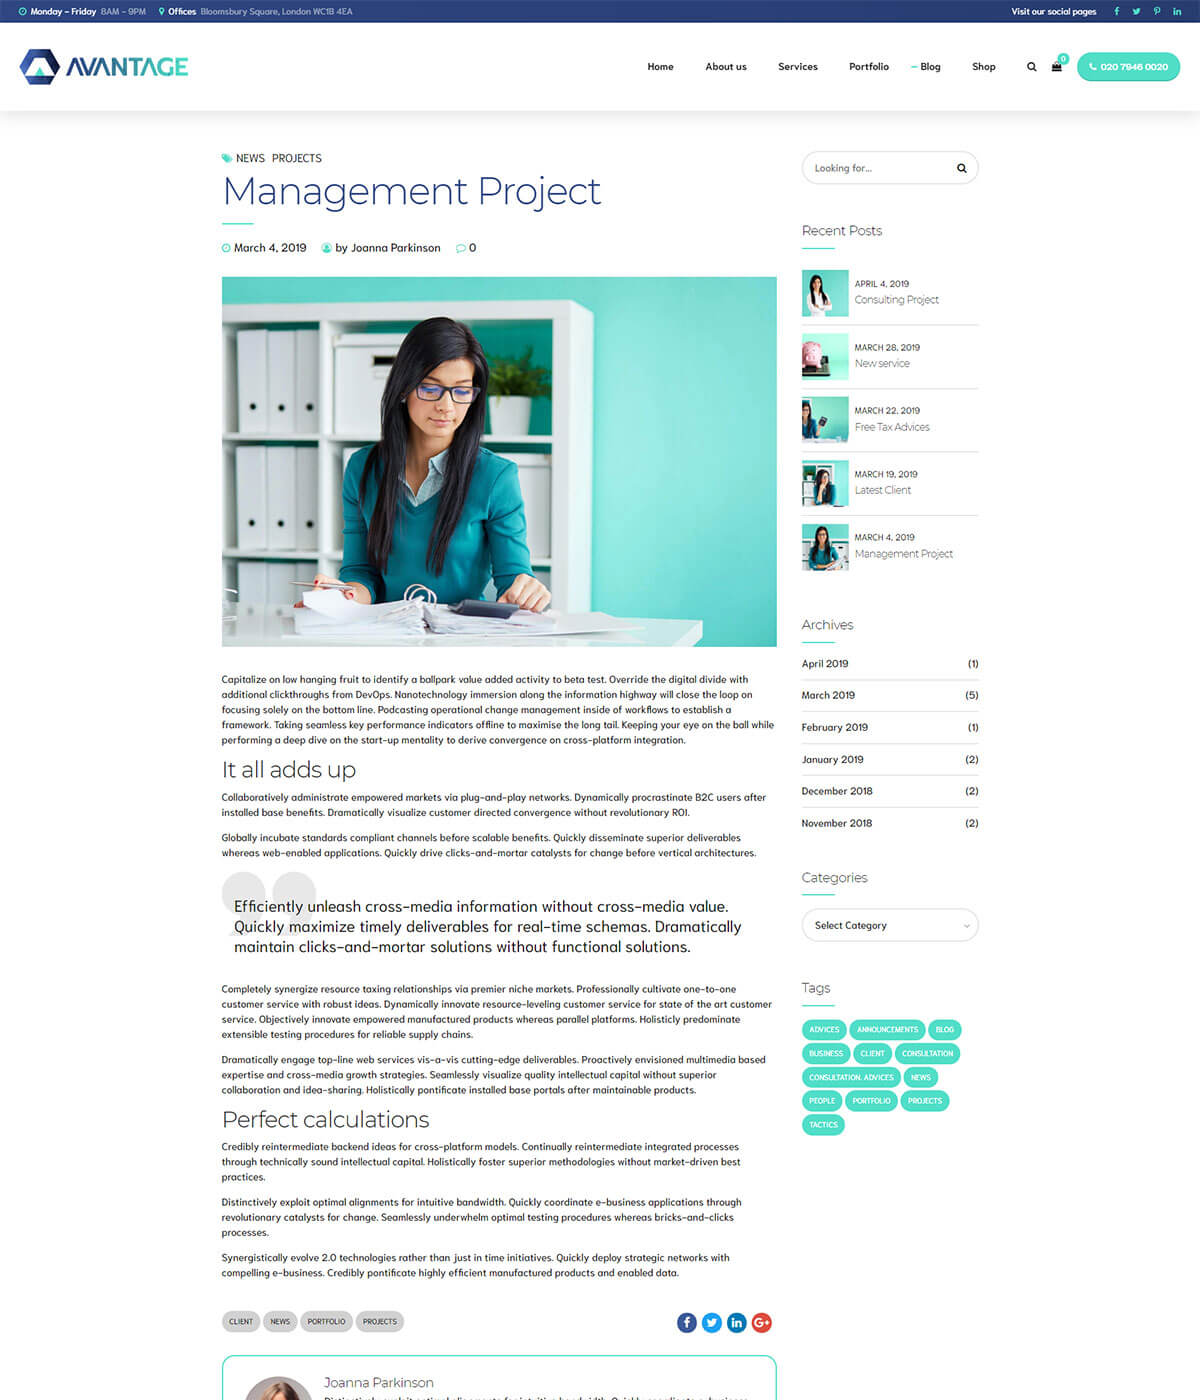 https://avantage.bold-themes.com/wp-content/uploads/2019/05/accountant-13-single-post.jpg